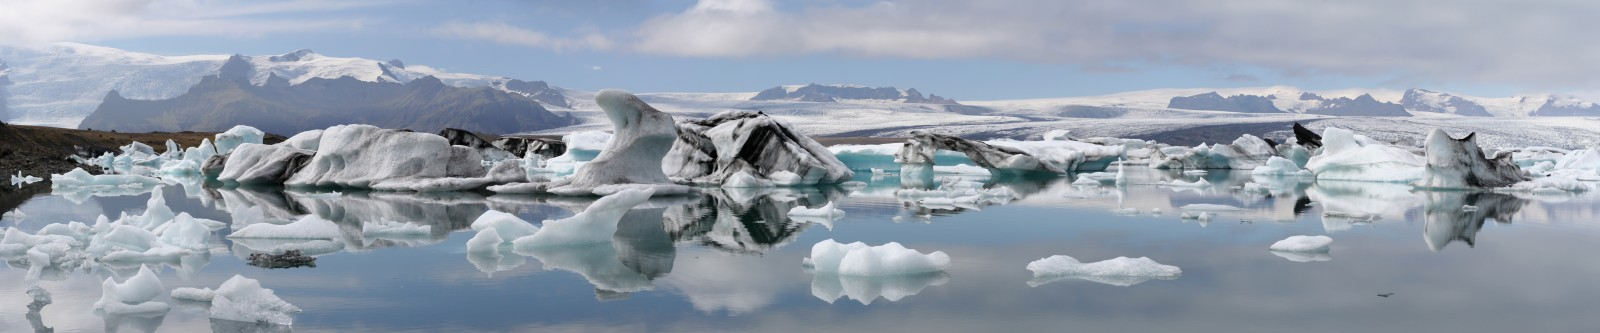 Panorama of the Jökulsárlón glacial lake, Iceland, 2010. [Credit: Ira Goldstein (via wikimedia commons)]